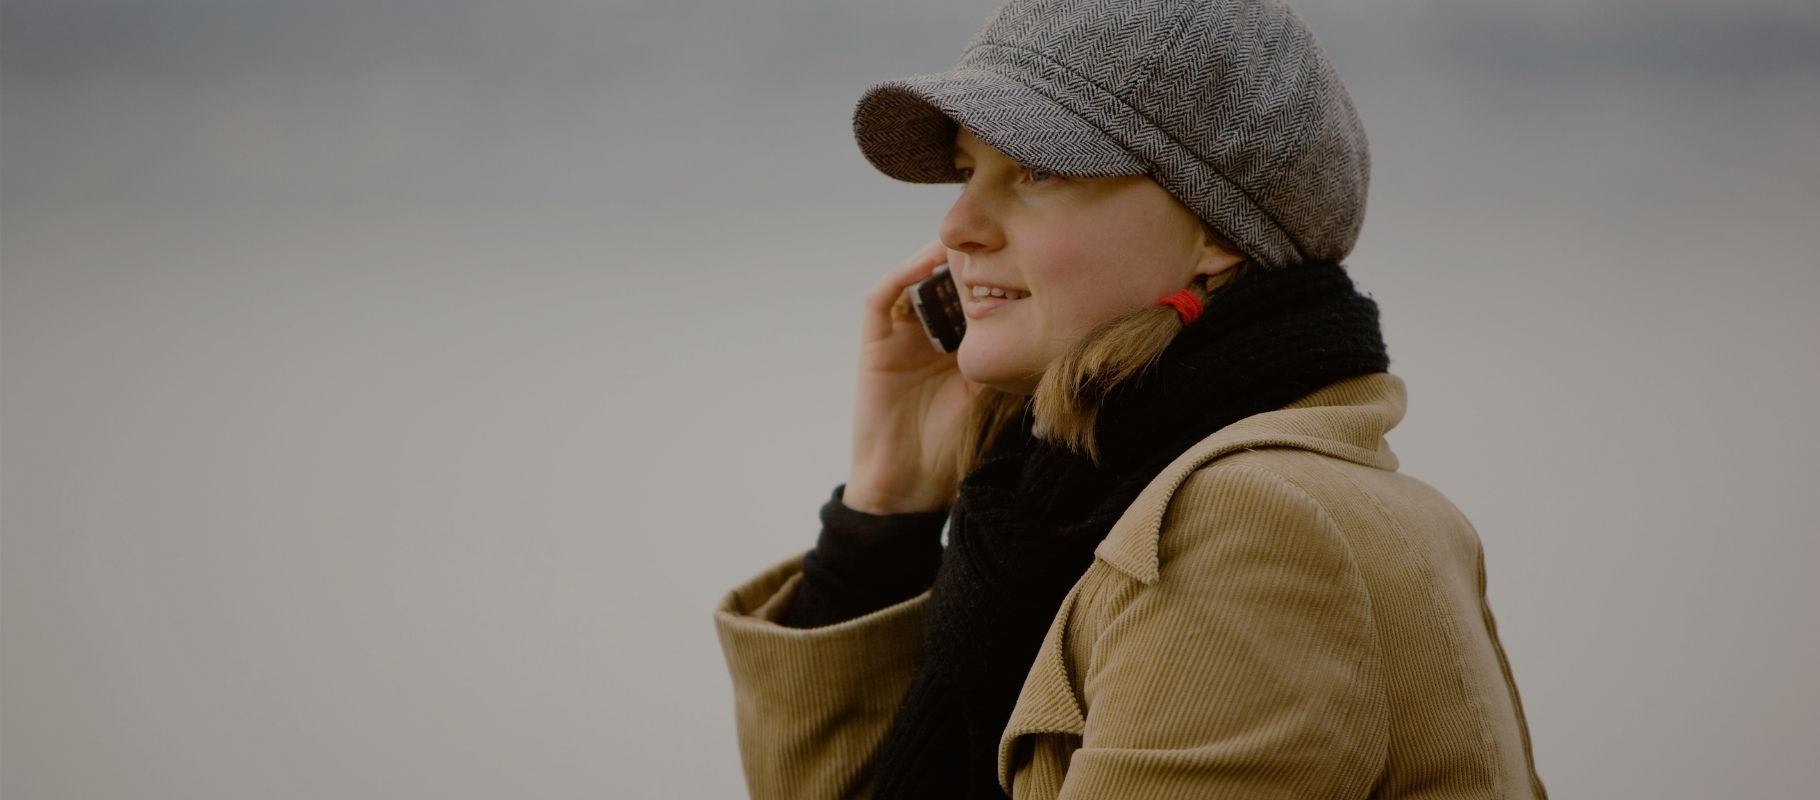 Girl on Cell Phone showing correlation ofRadio Frequency Radiation and Your Health